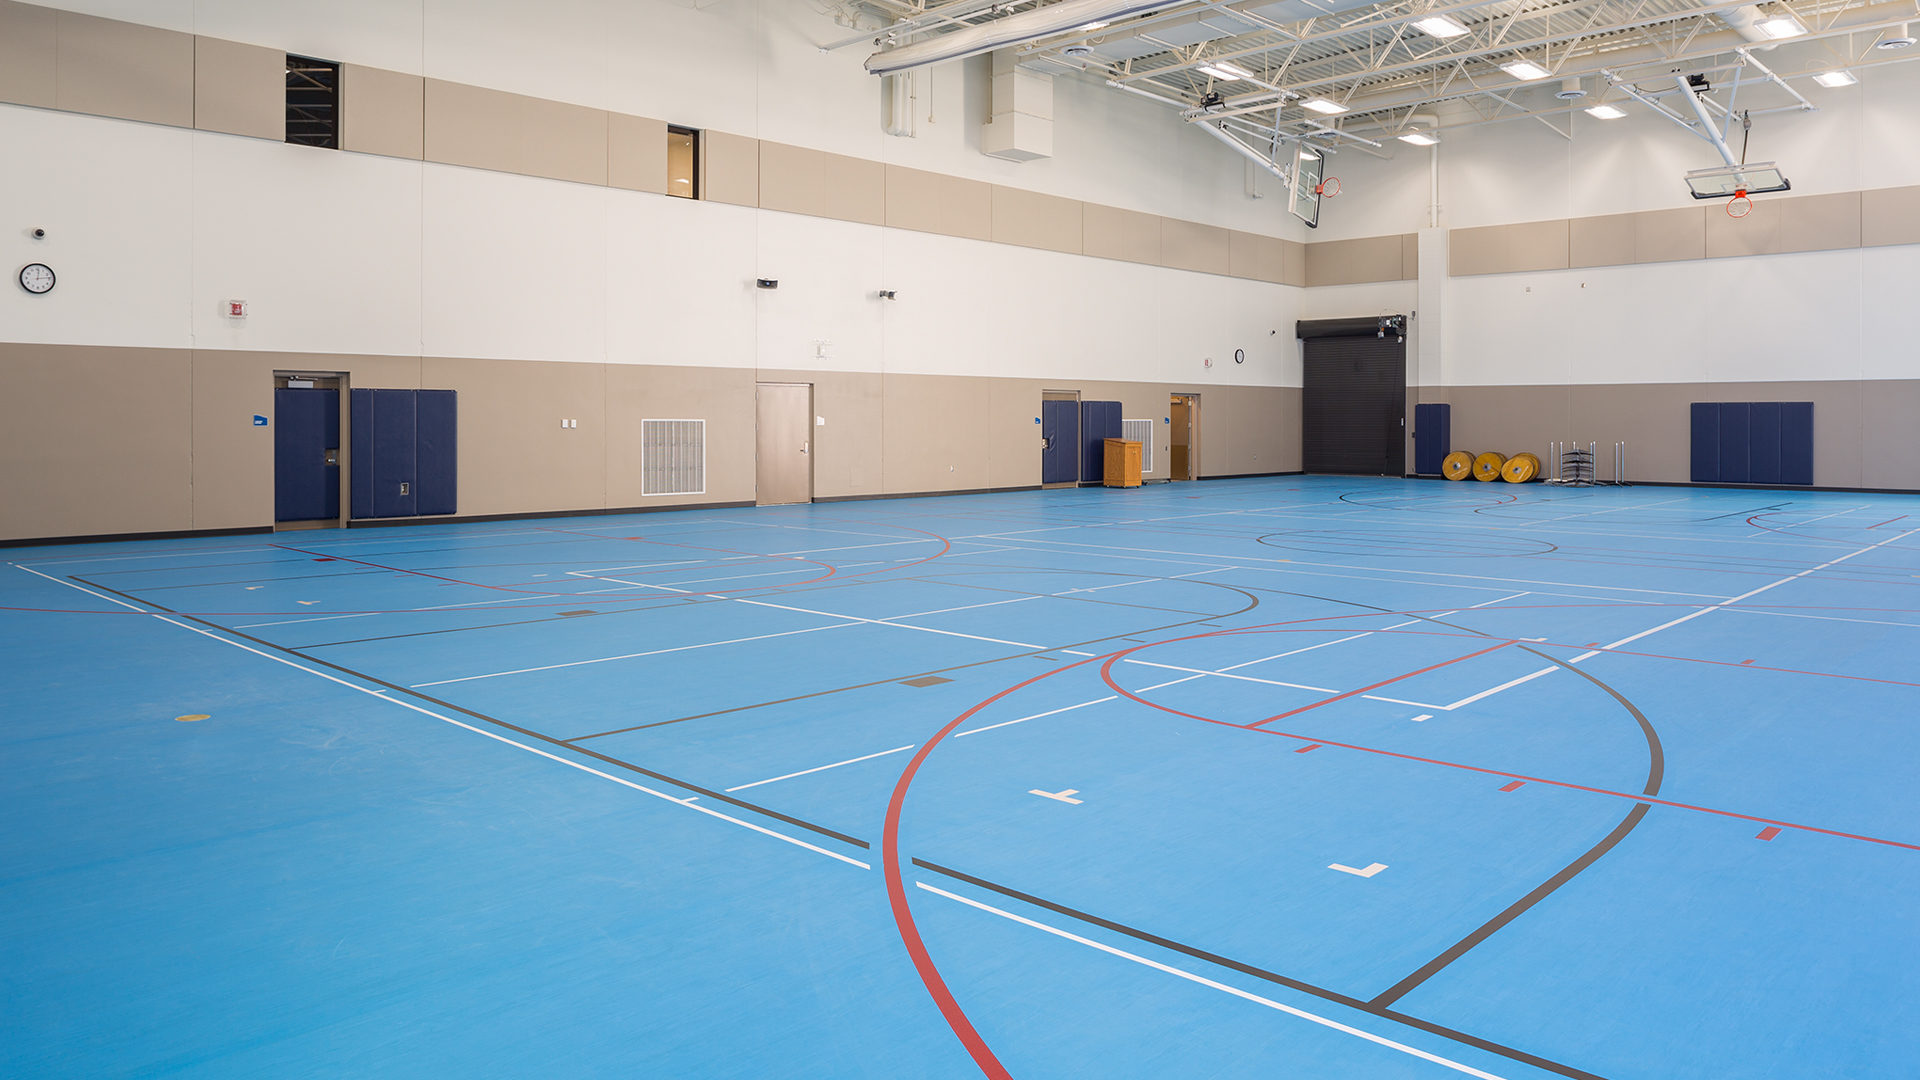 Maslowski Wellness and Research Center Wadena MN Interior Gymnasium